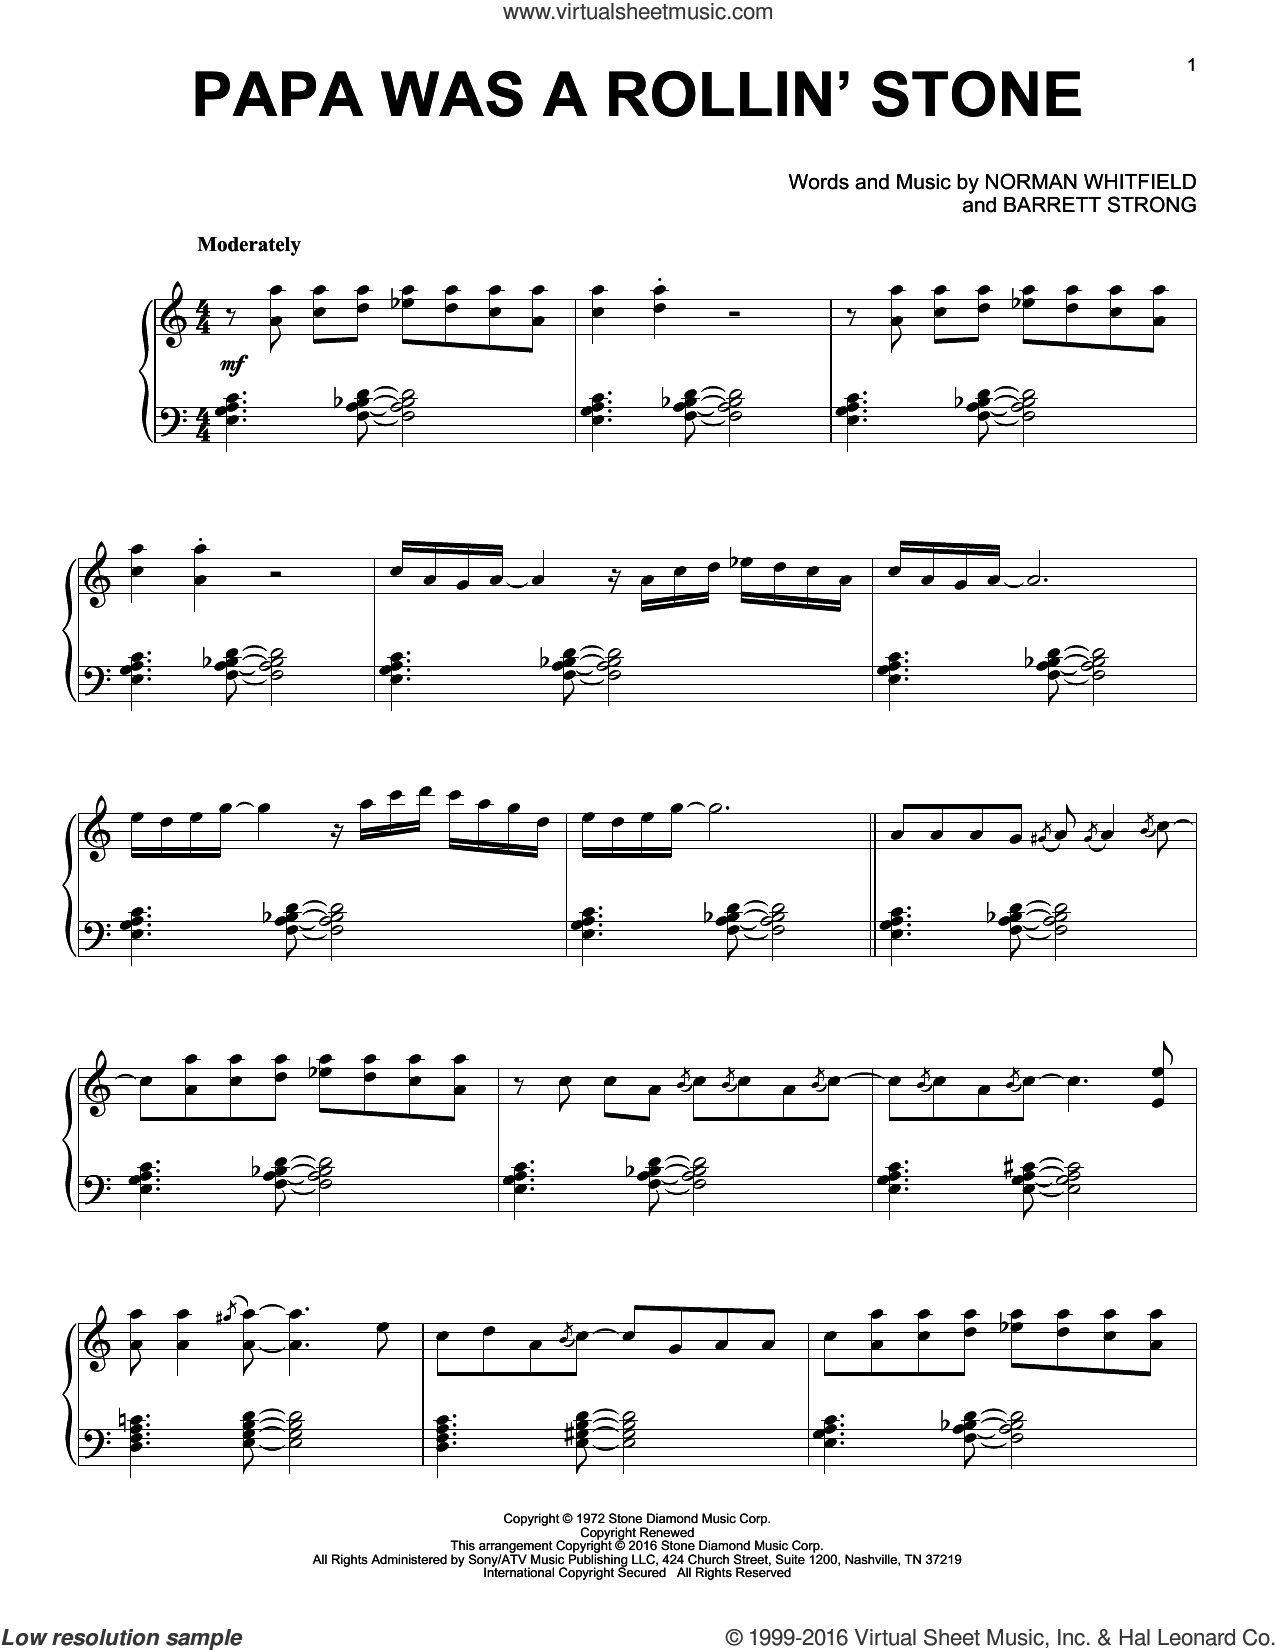 Papa Was A Rollin' Stone sheet music for piano solo by Norman Whitfield, George Michael, The Temptations and Barrett Strong, intermediate skill level